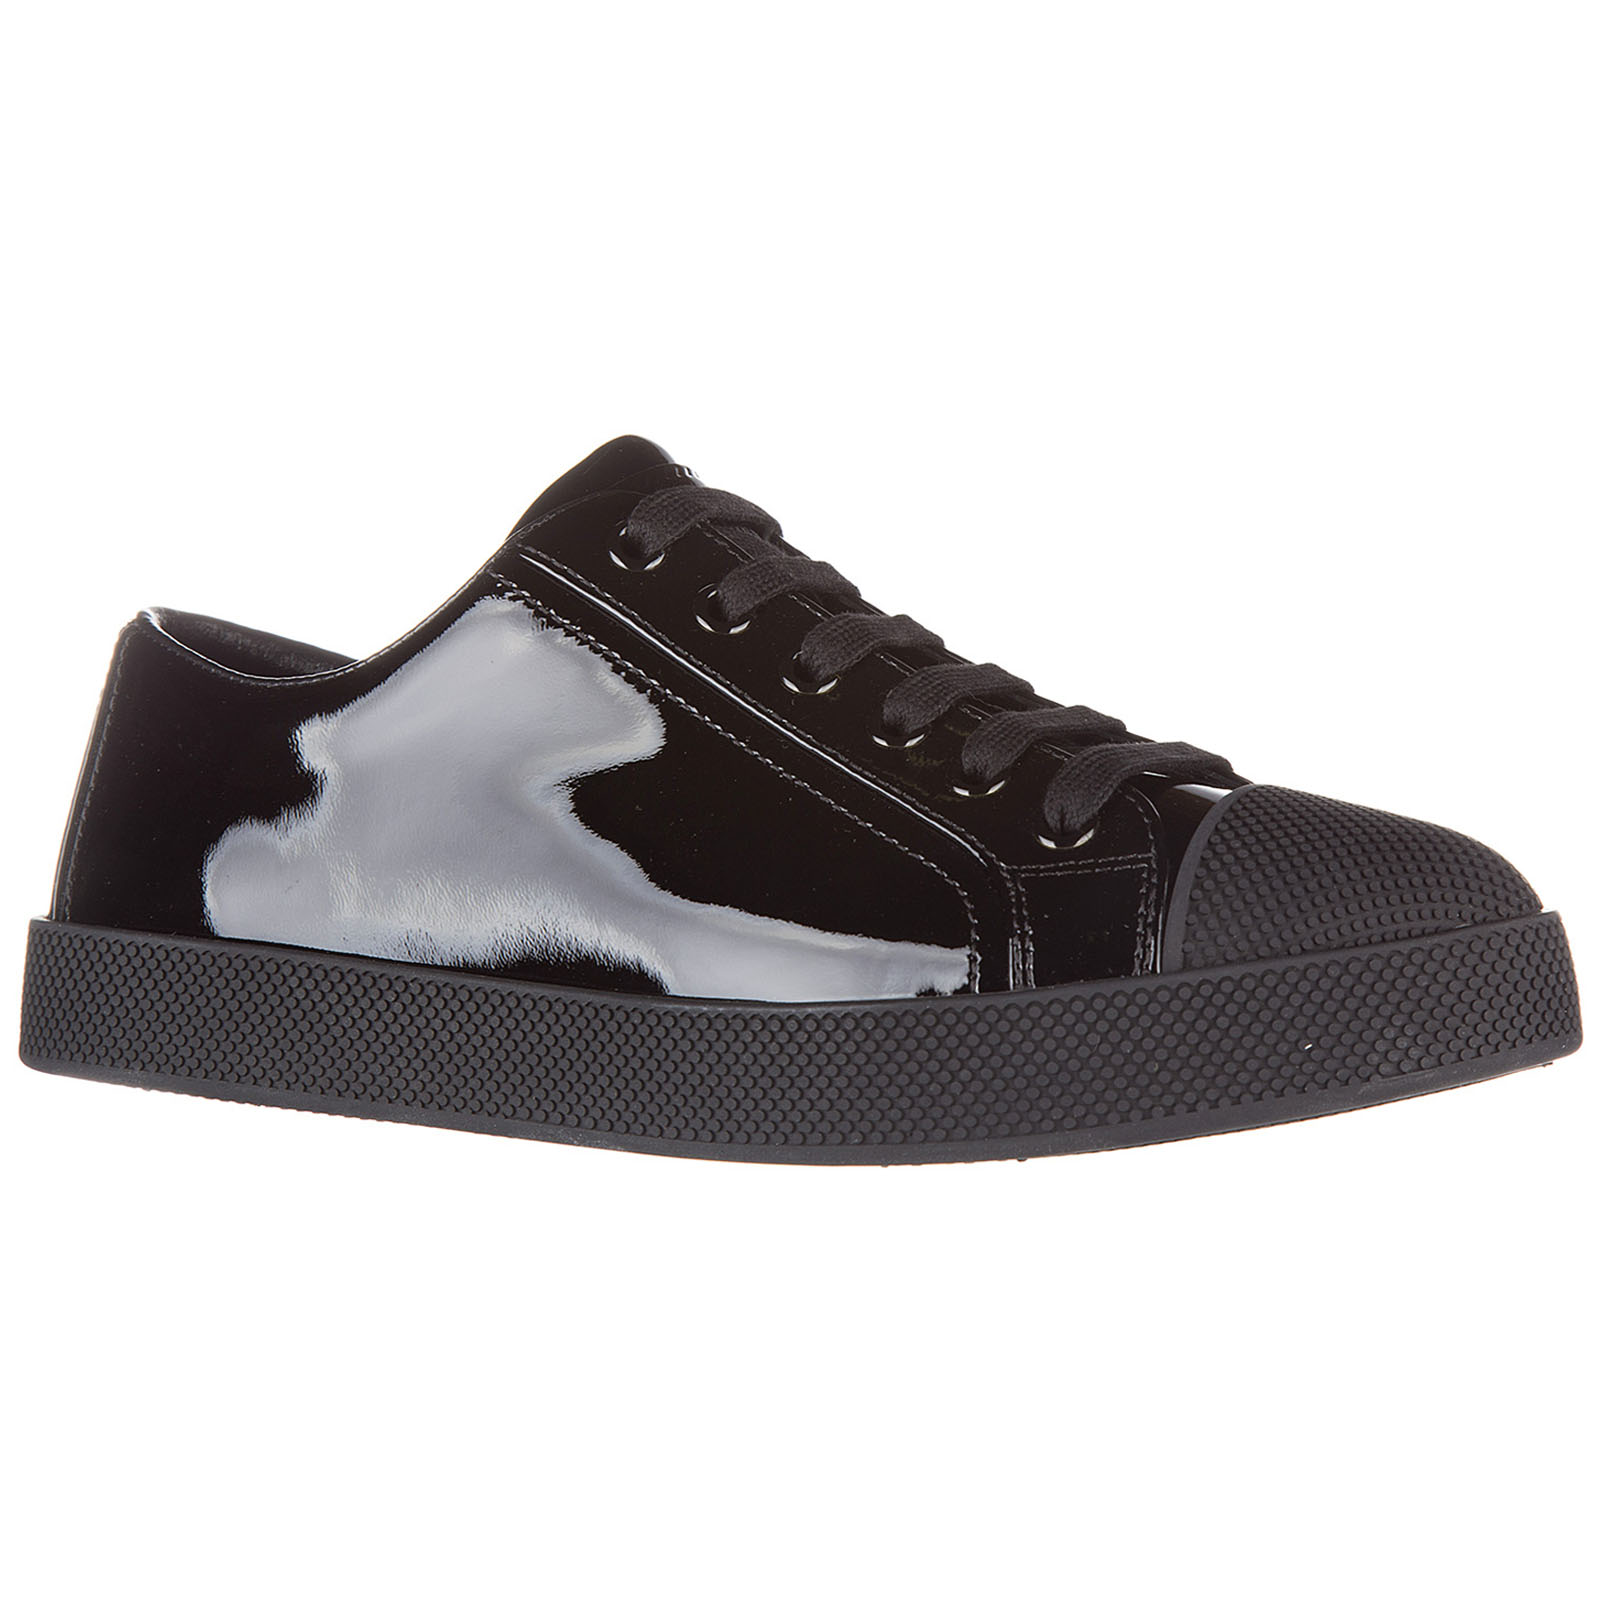 Women's shoes leather trainers sneakers vernice soft